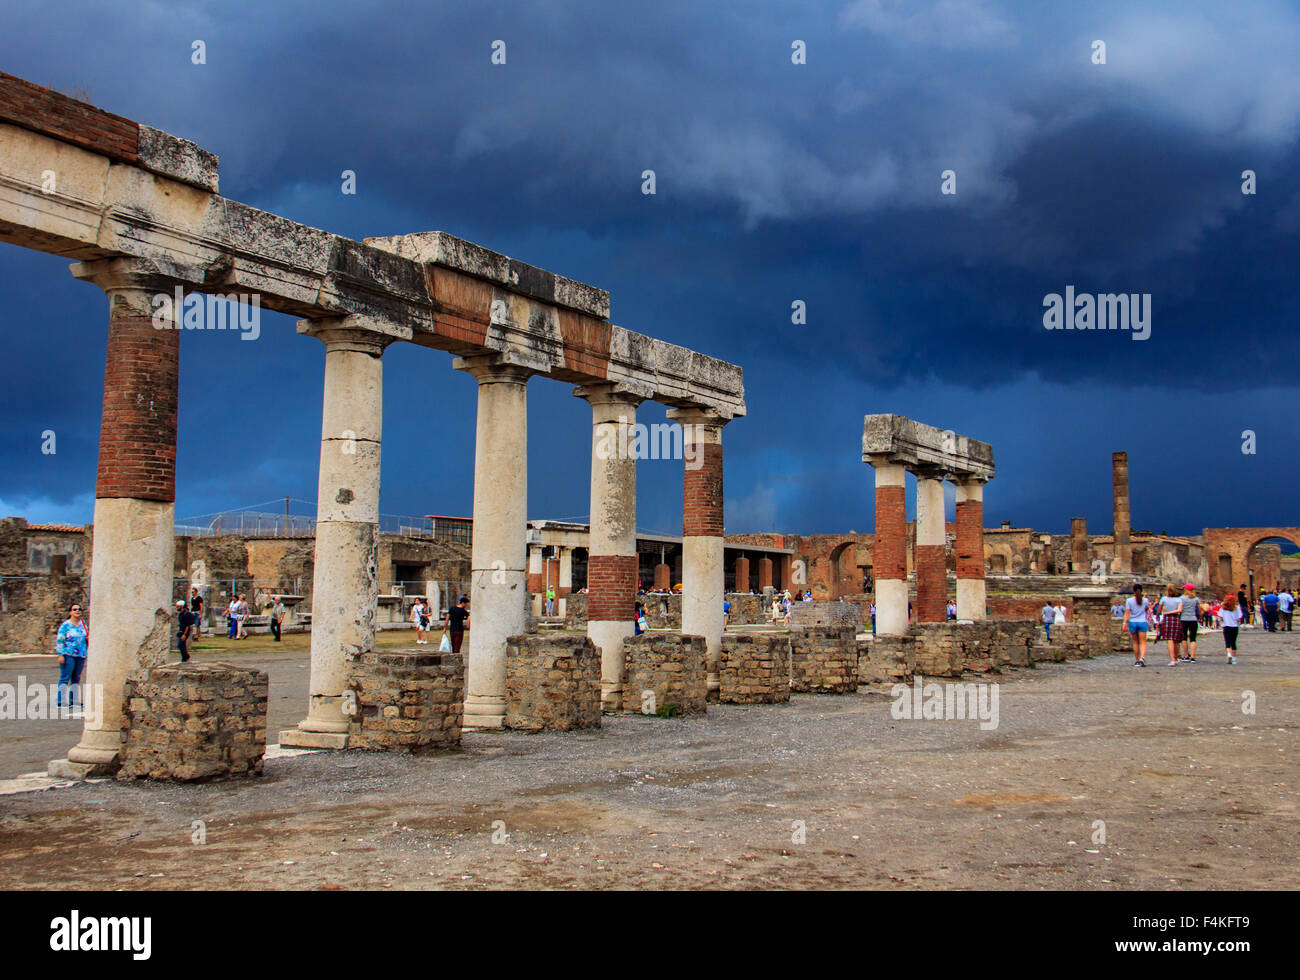 Ruins of ancient Pompeii under stormy sky. - Stock Image